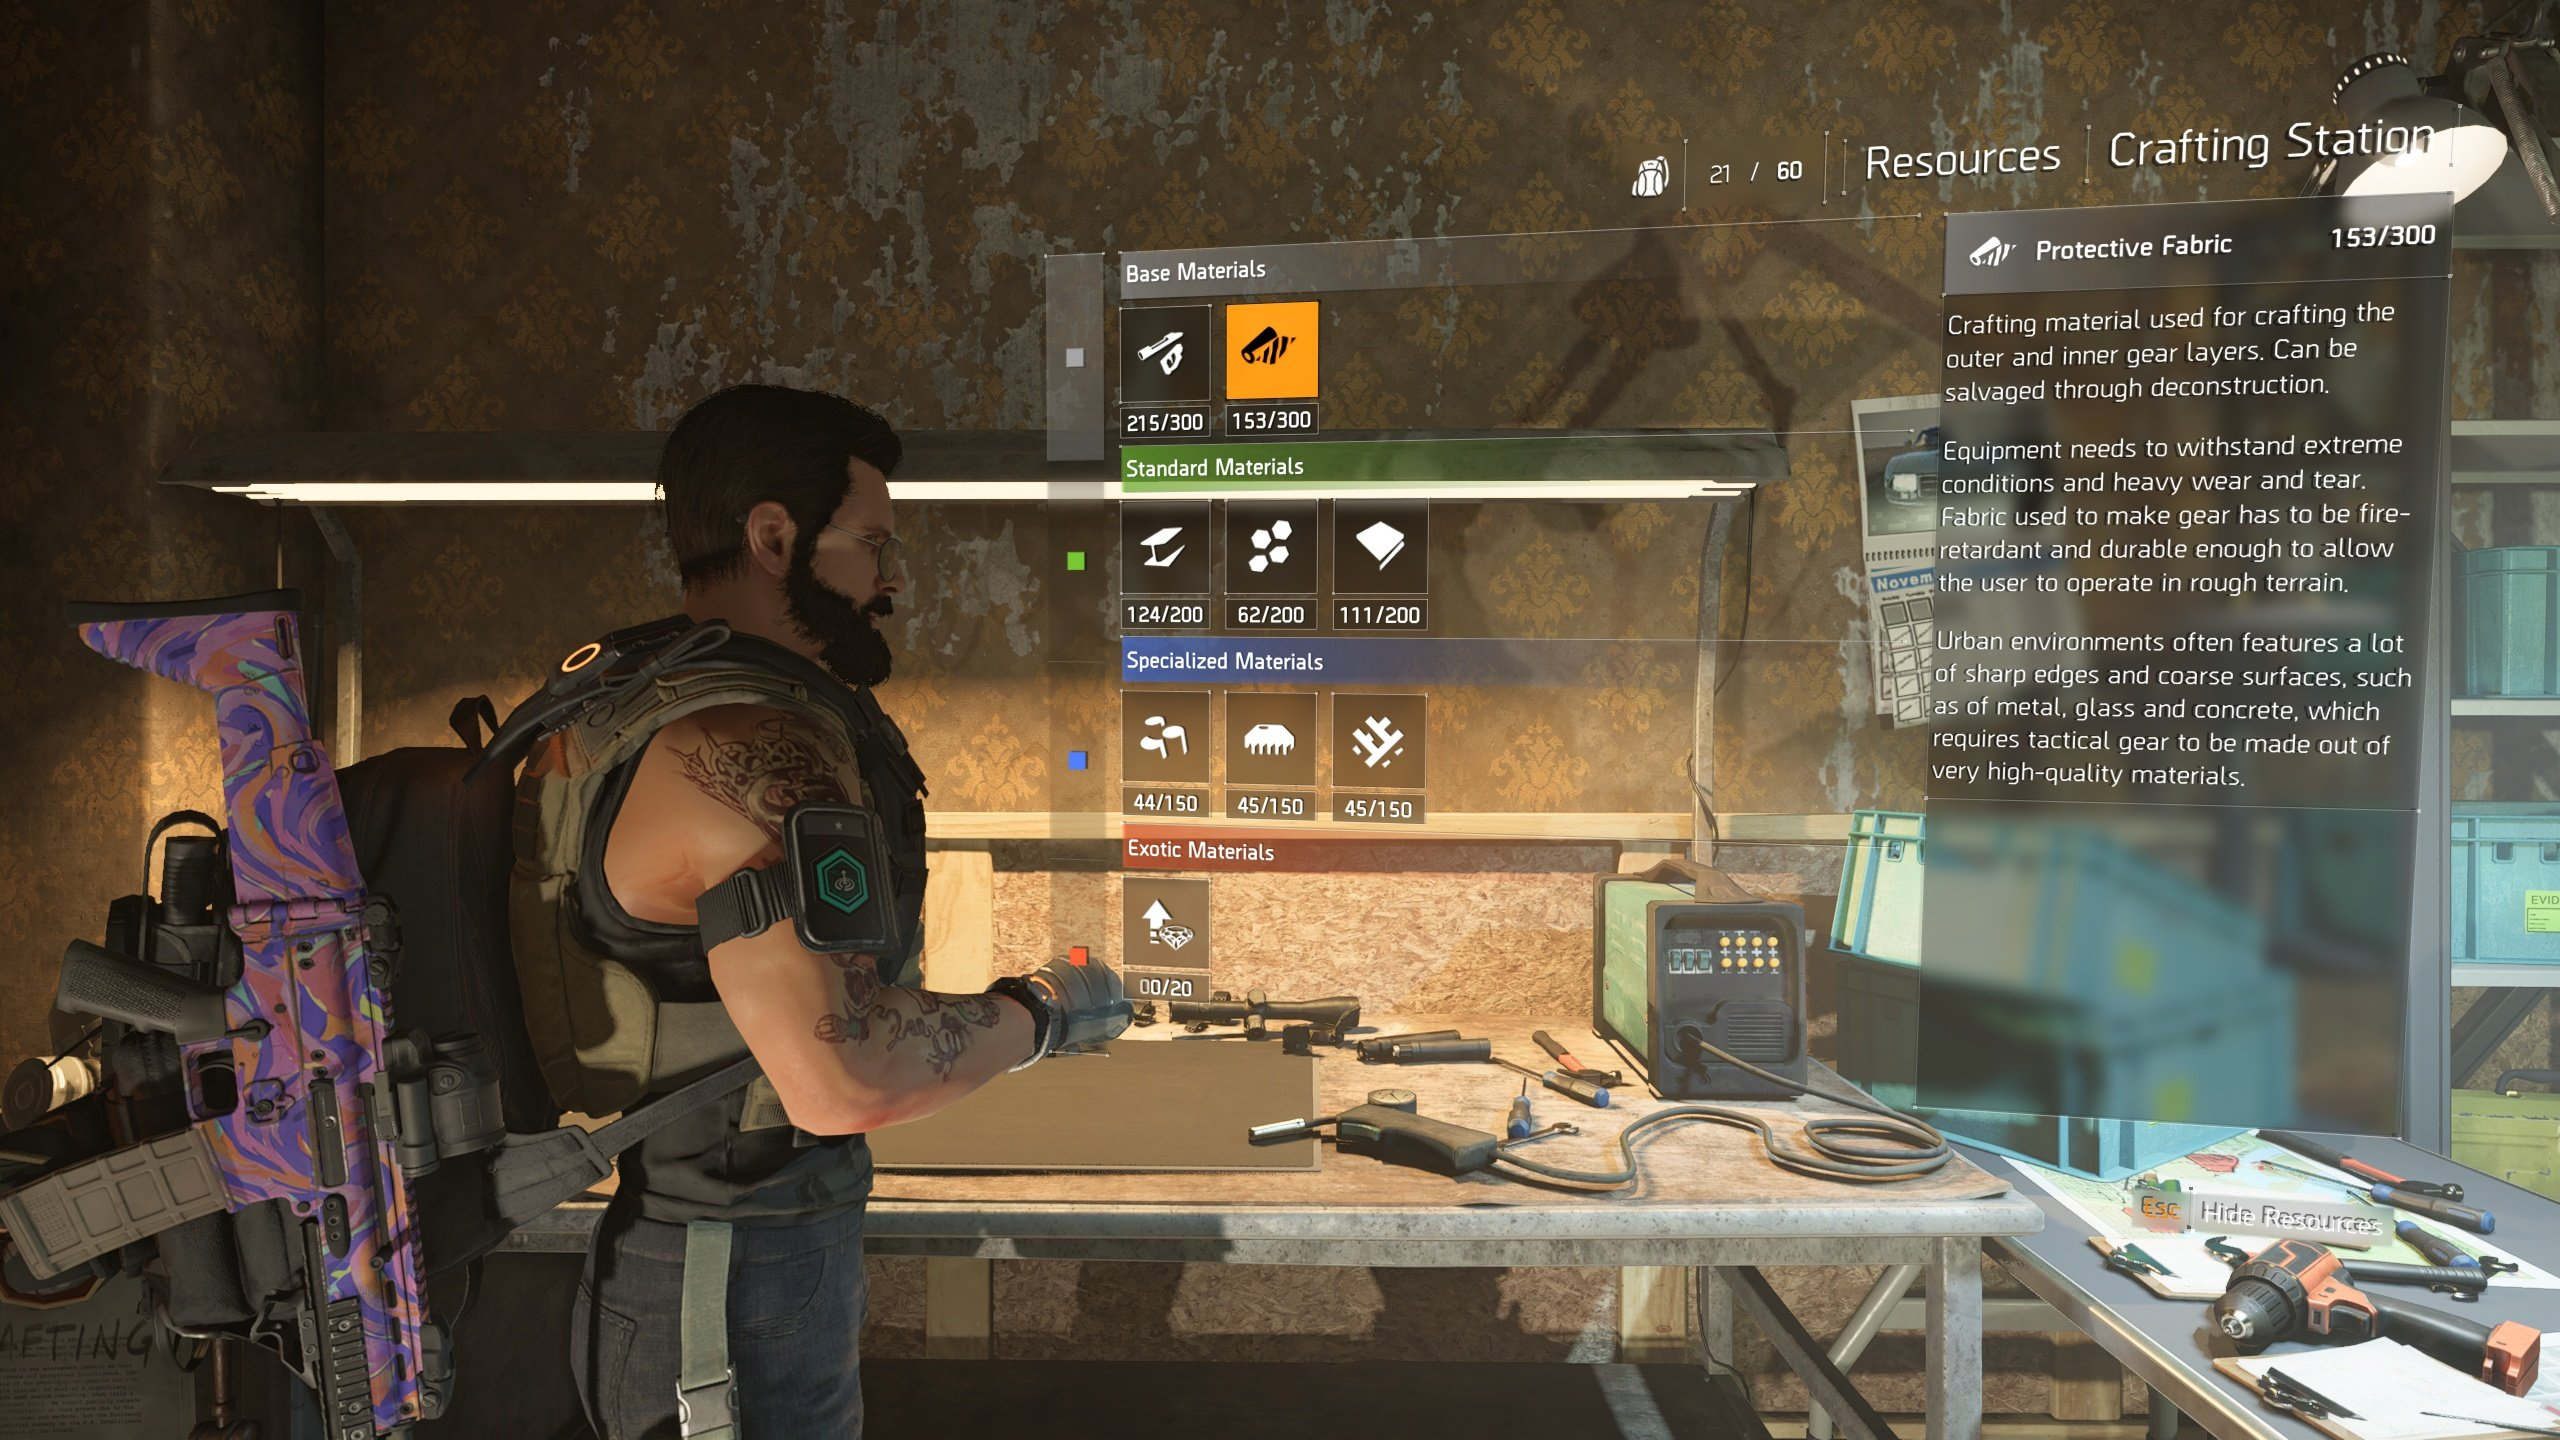 The Division 2 resource screen